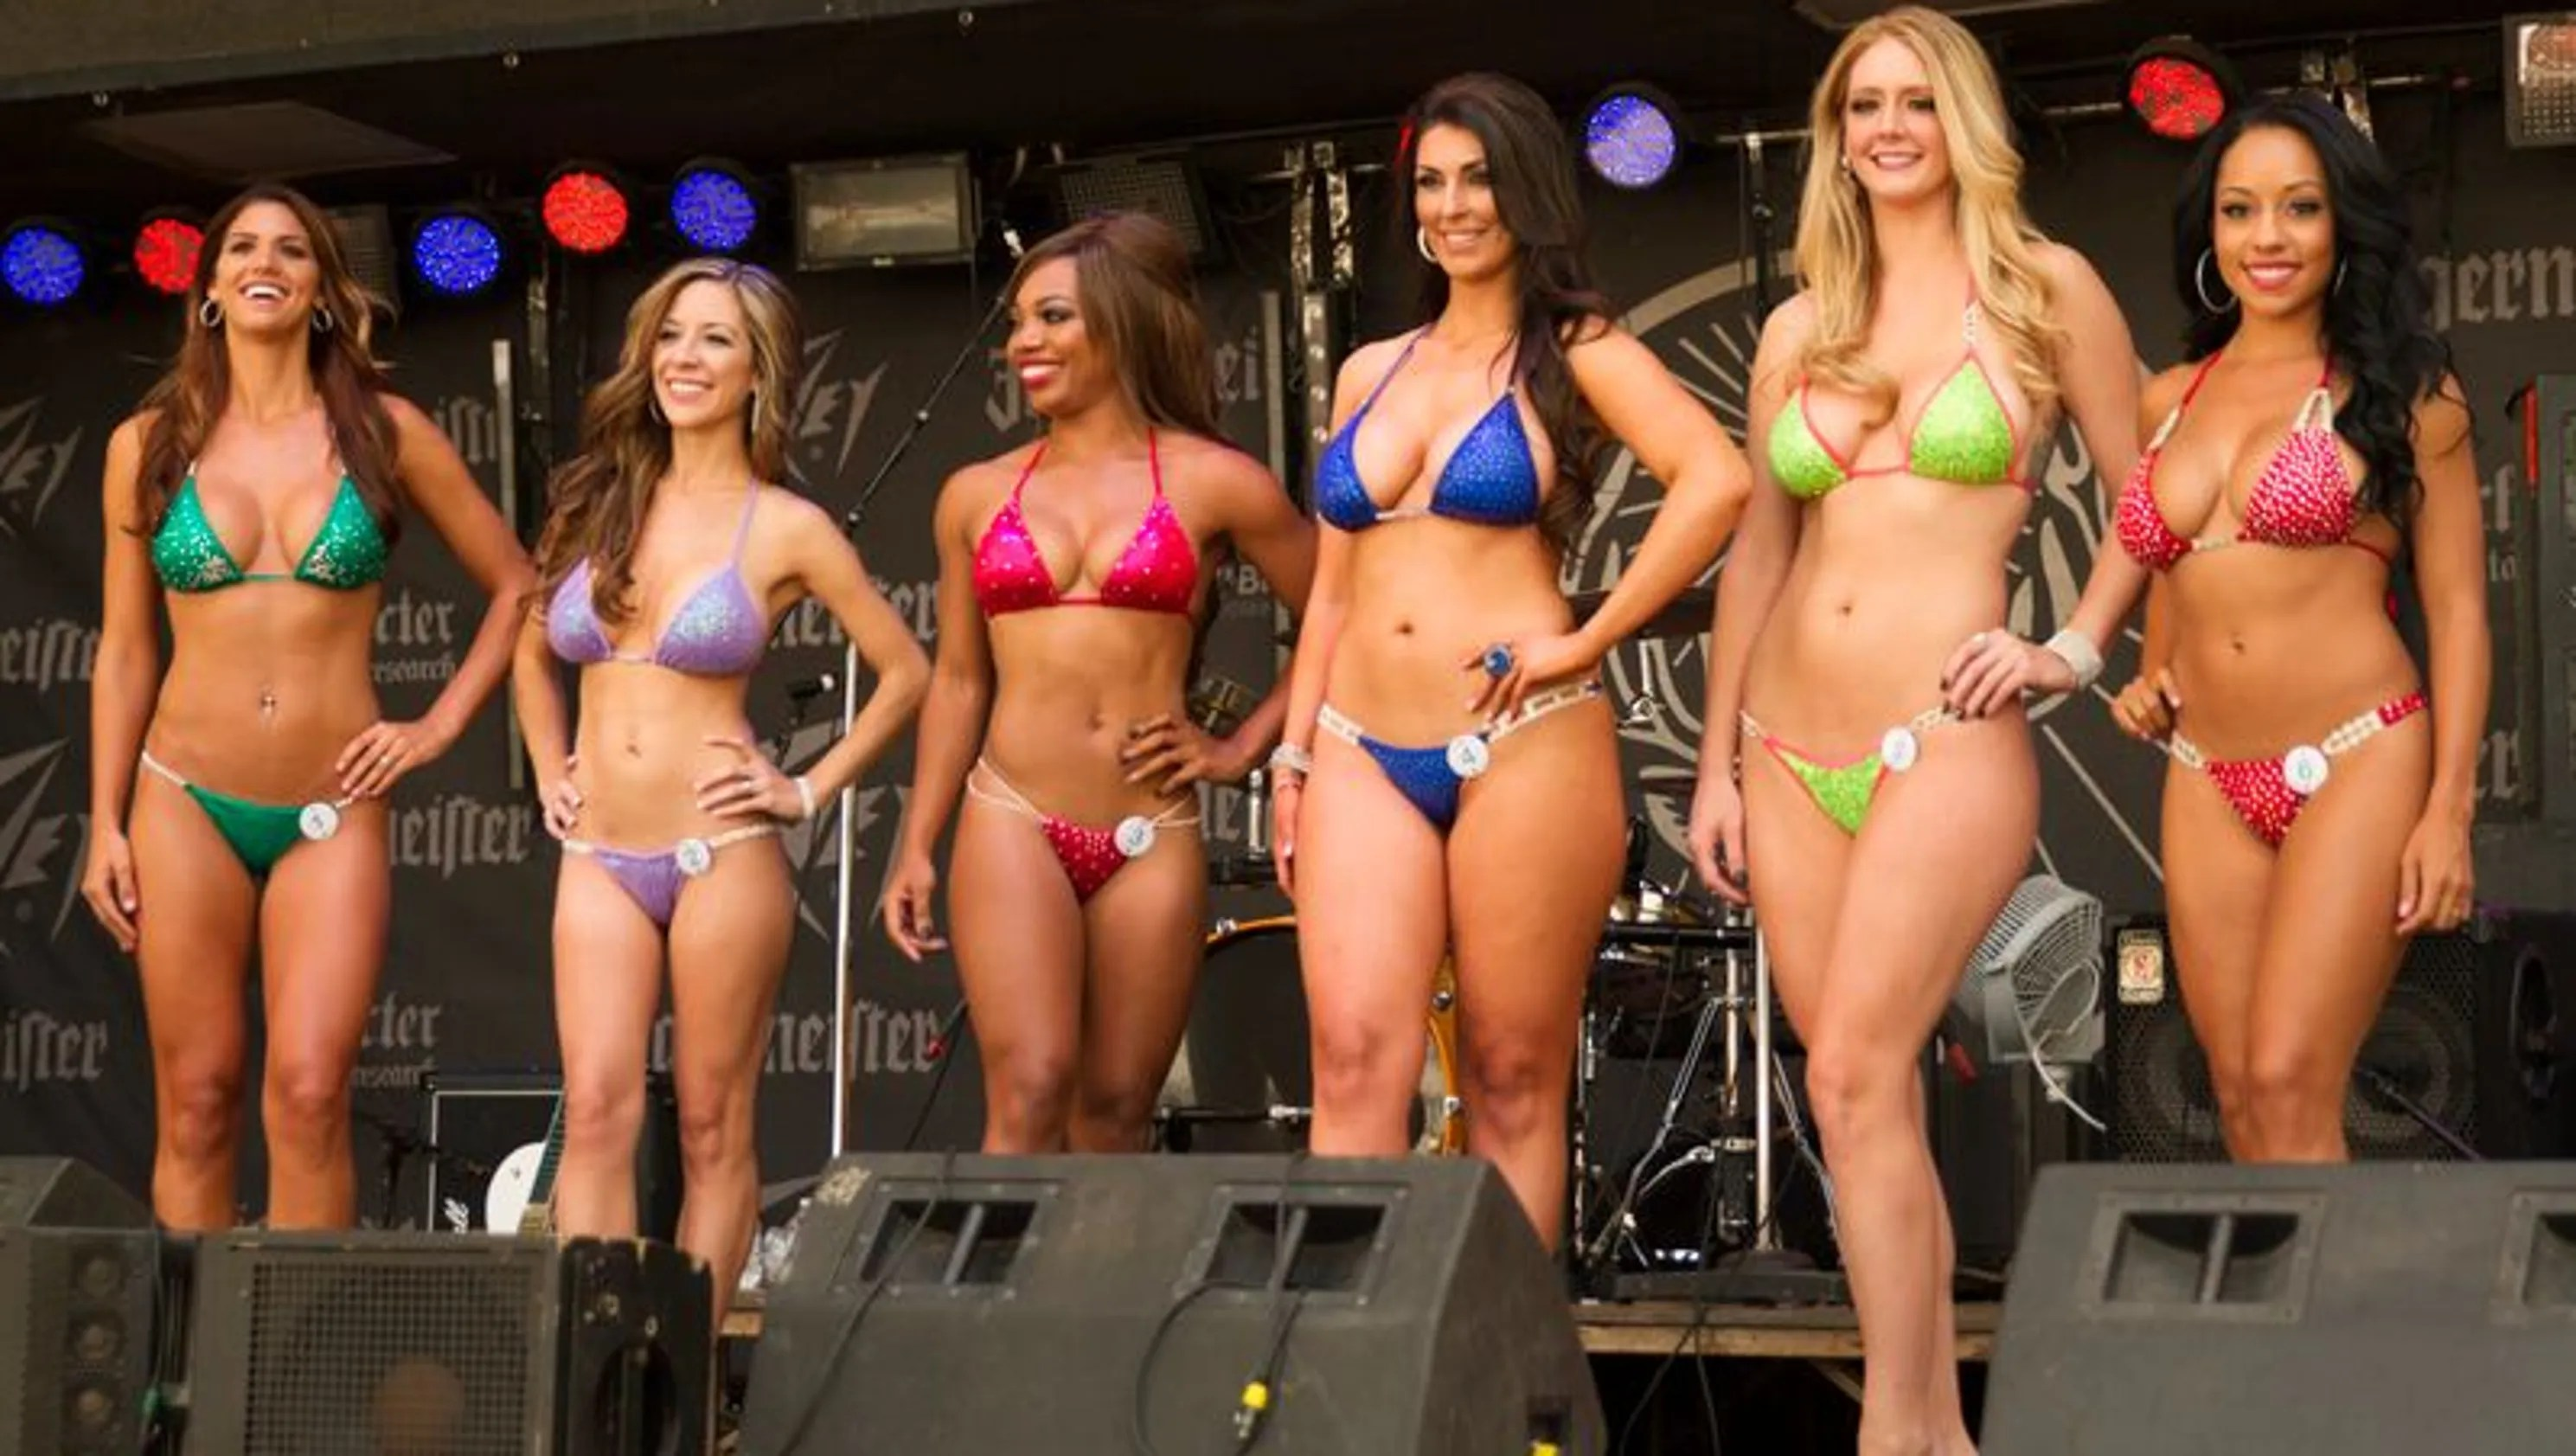 Corvette Girl Wallpaper Photos The International Bikini Team Appears At The